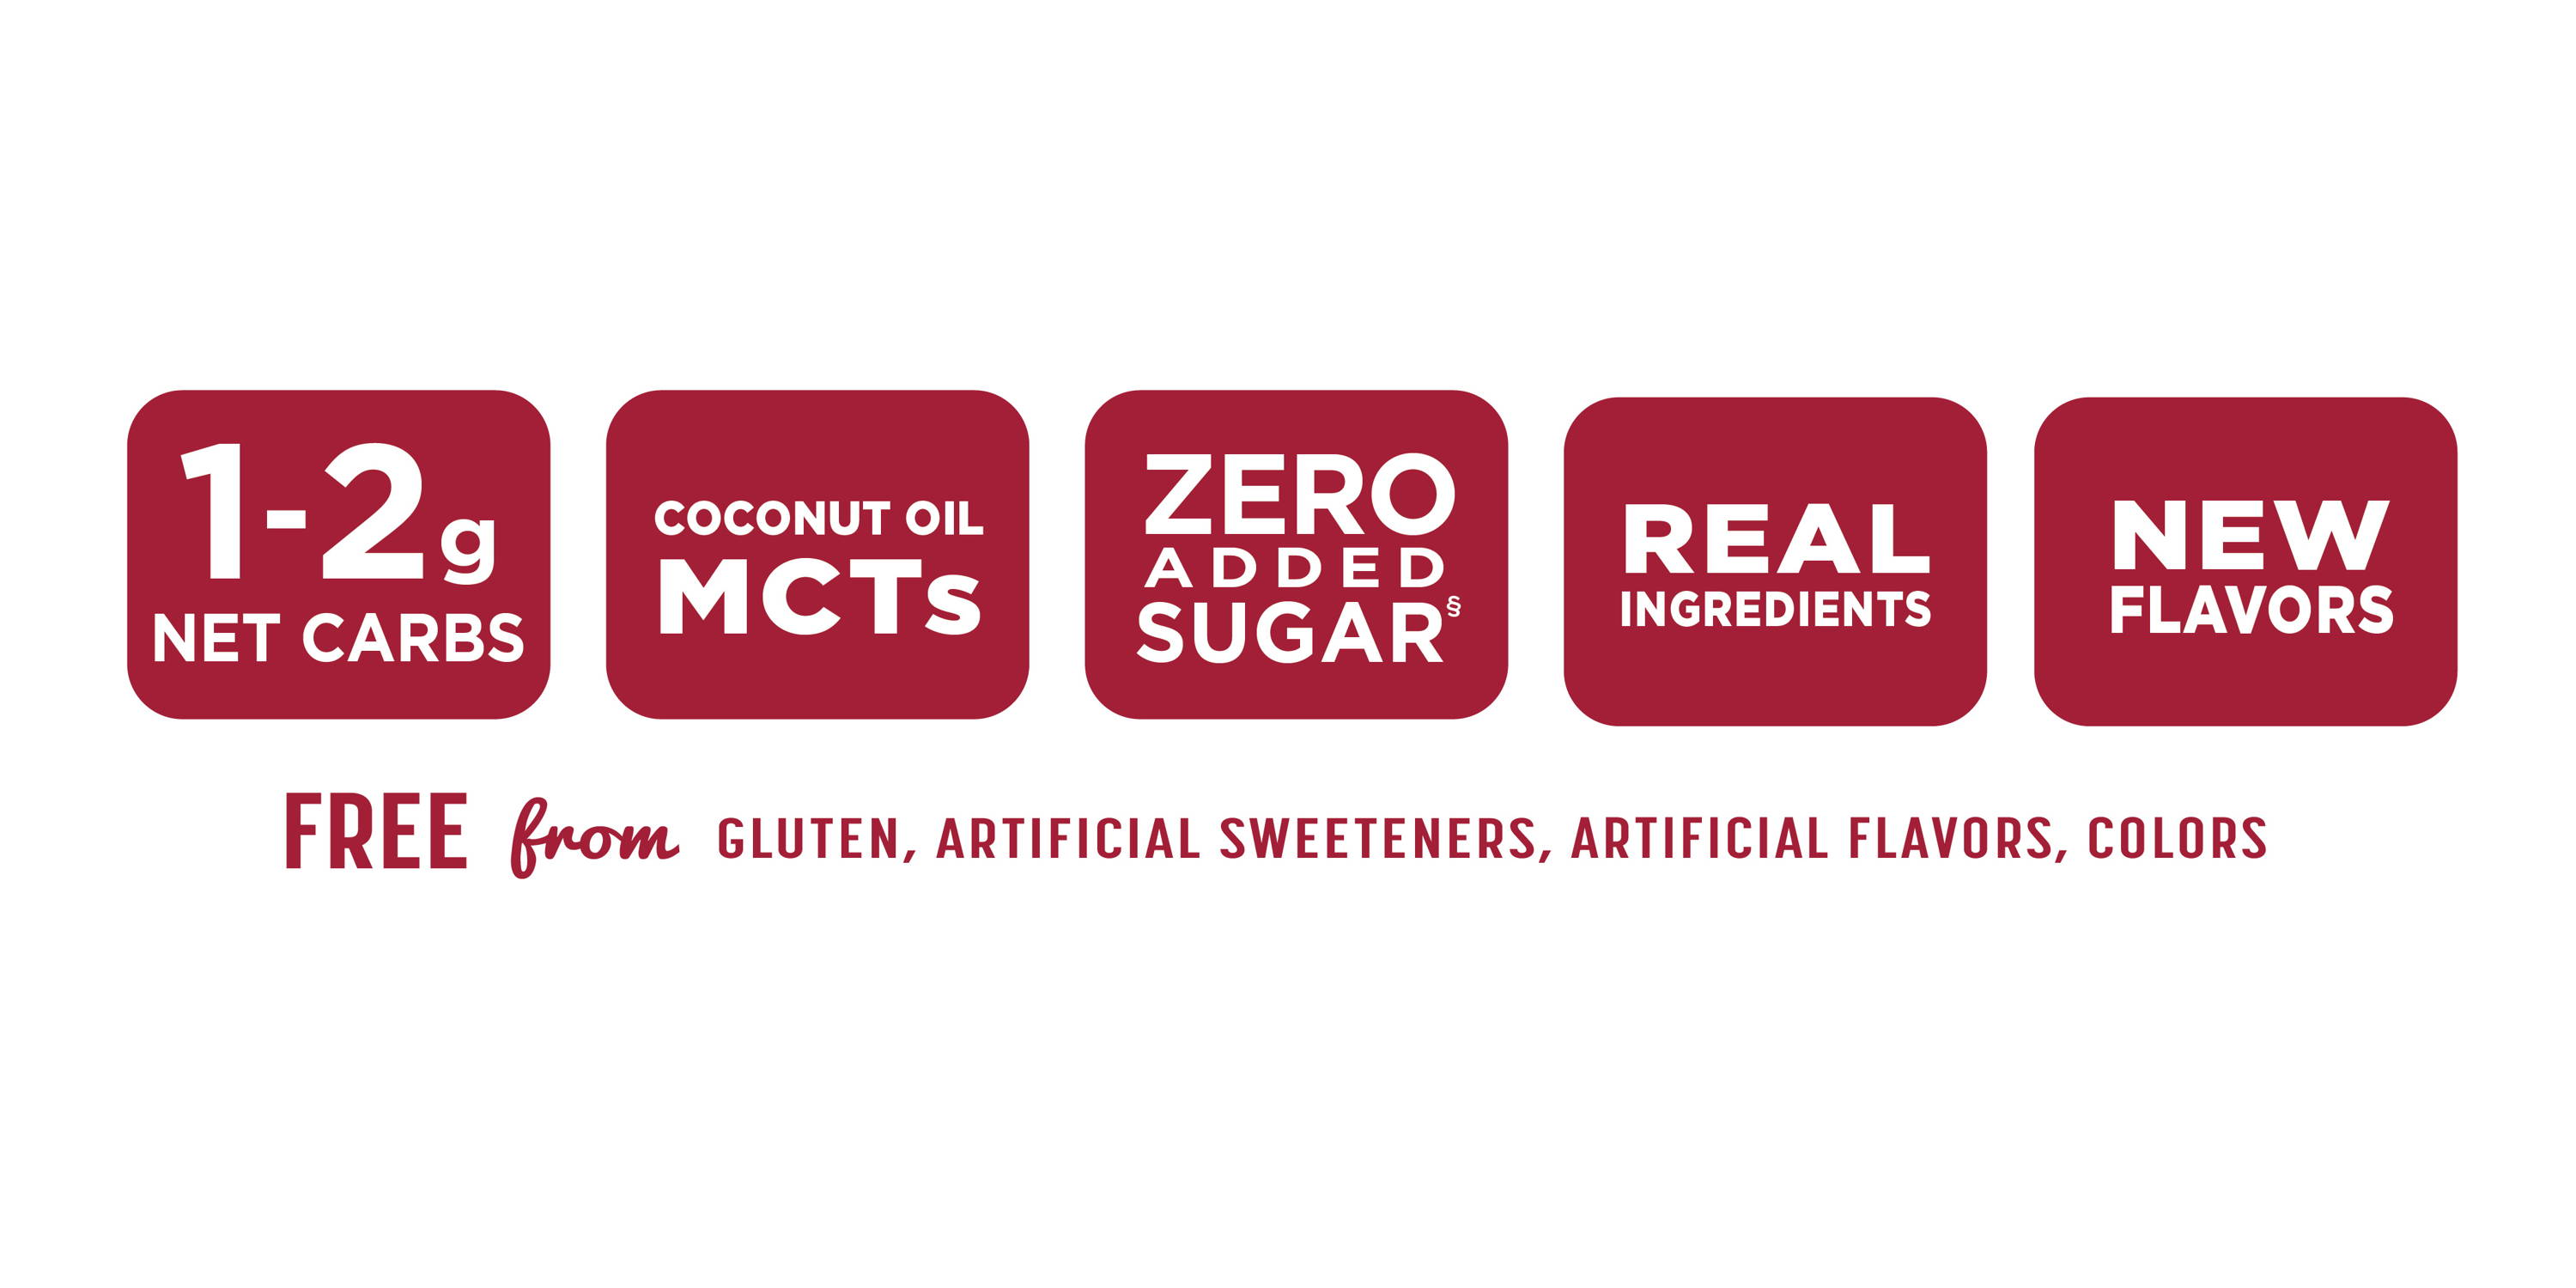 1-2g net carbs, coconut oil MCTs, zero added sugar, real ingredients, new flavors: free from gluten, artificial sweeteners, artificial flavors, colors